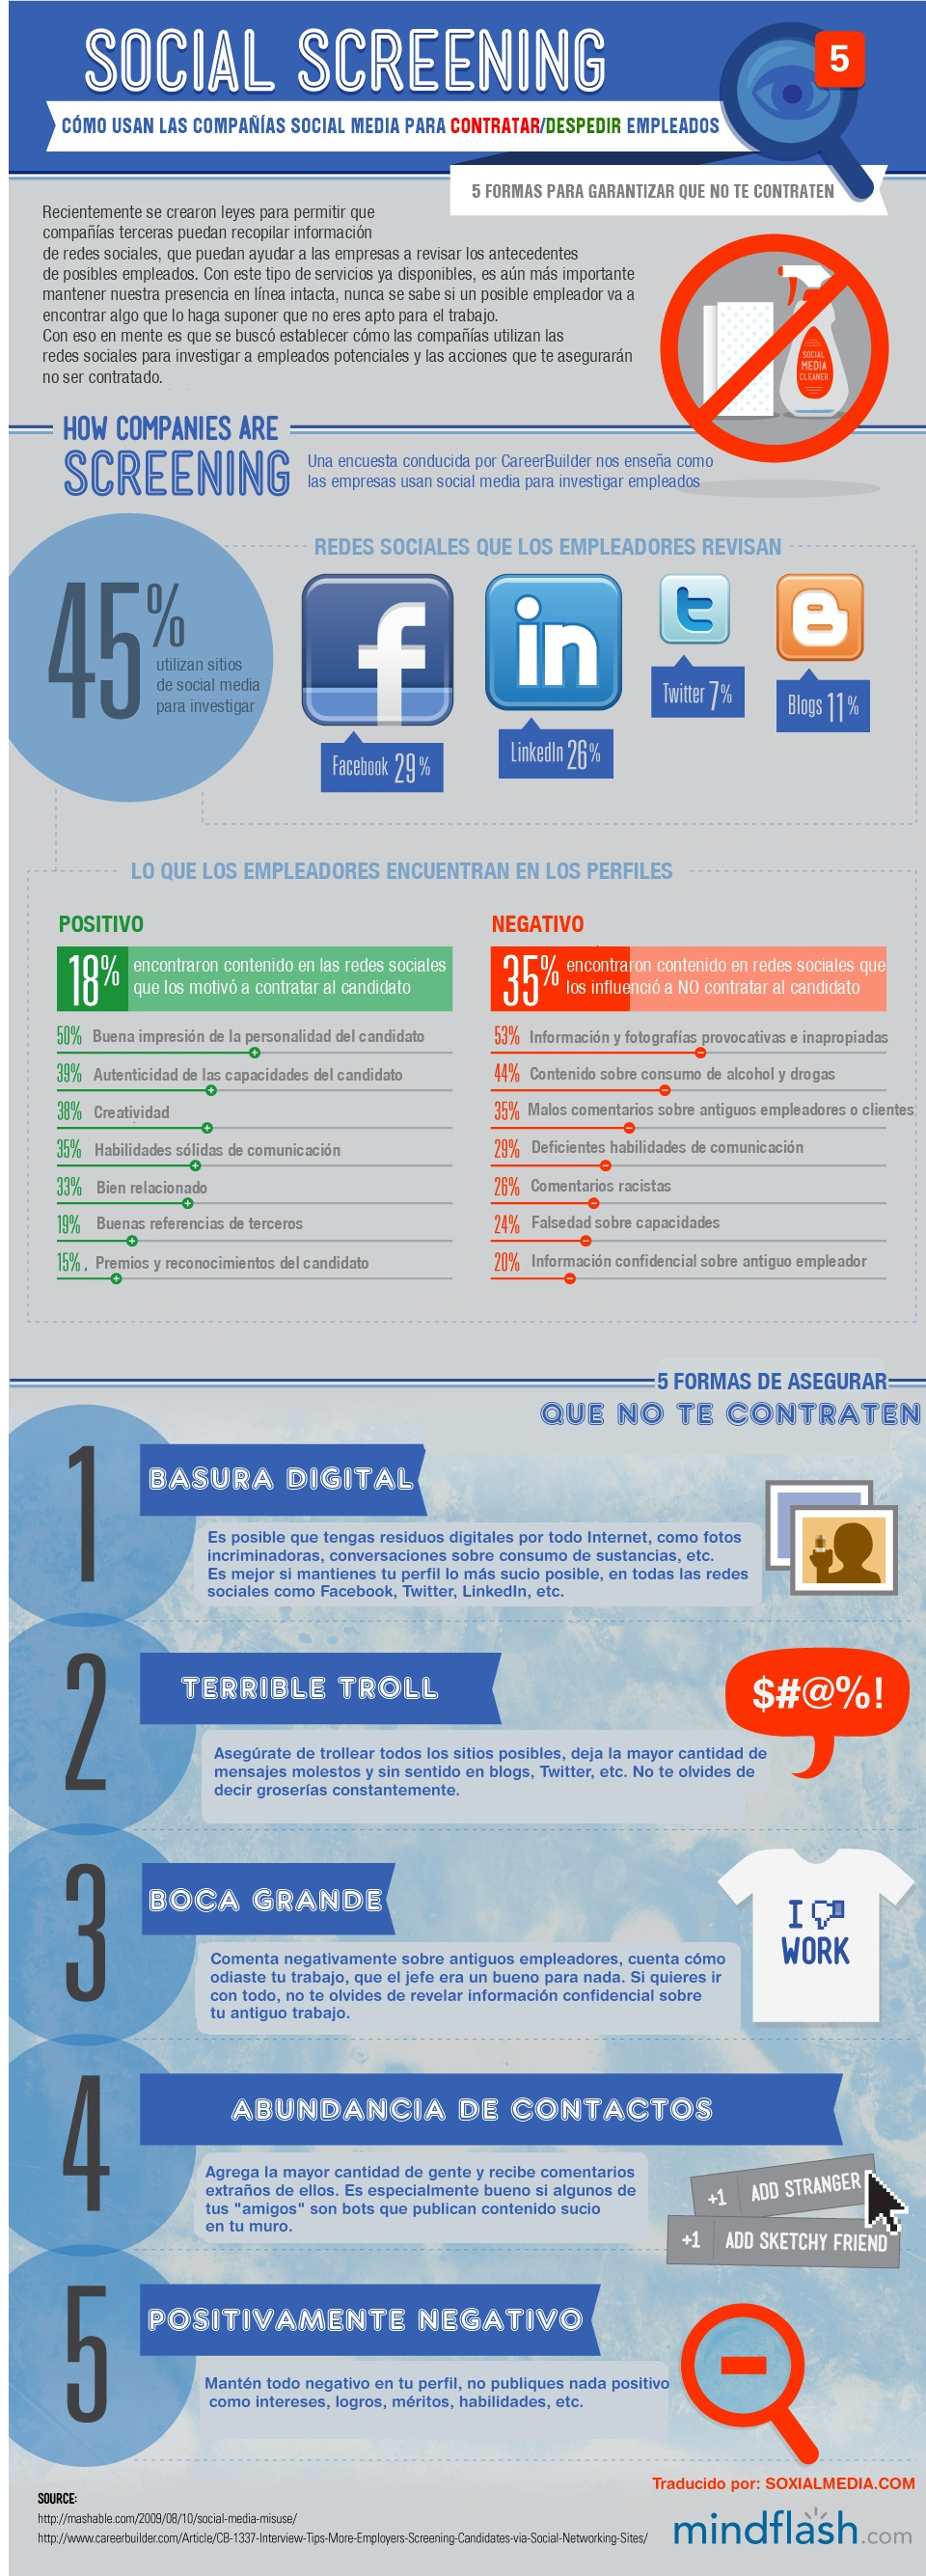 antecedentes reputacion en linea redes sociales empleadores trabajo